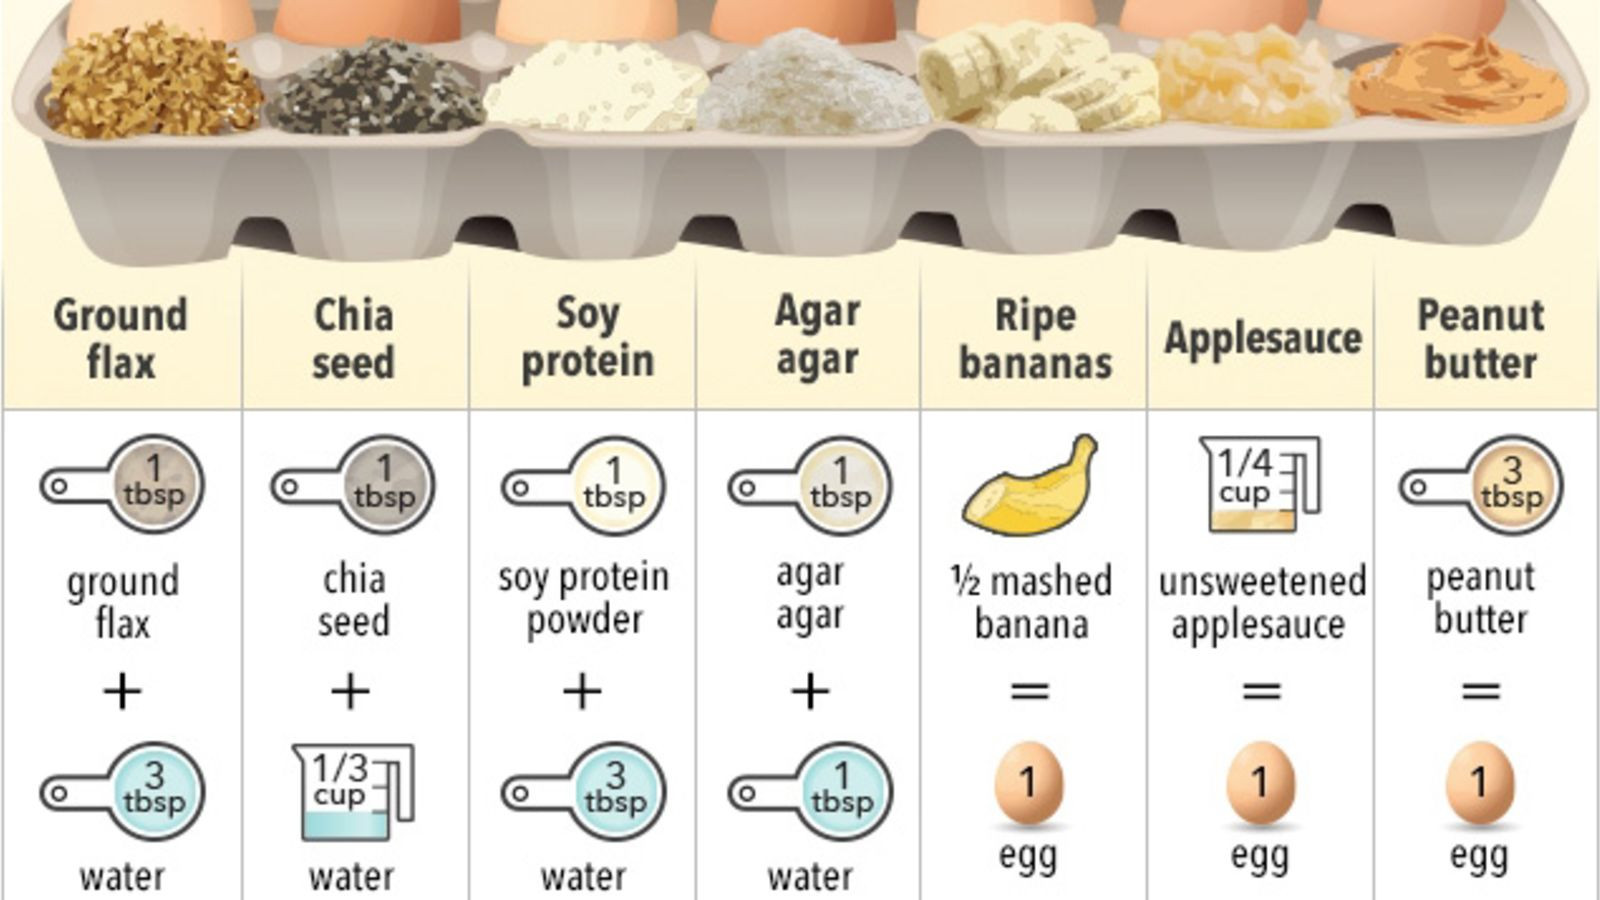 Applesauce Substitute For Egg  This Cheat Sheet Shows the Best Egg Substitutes for Baking